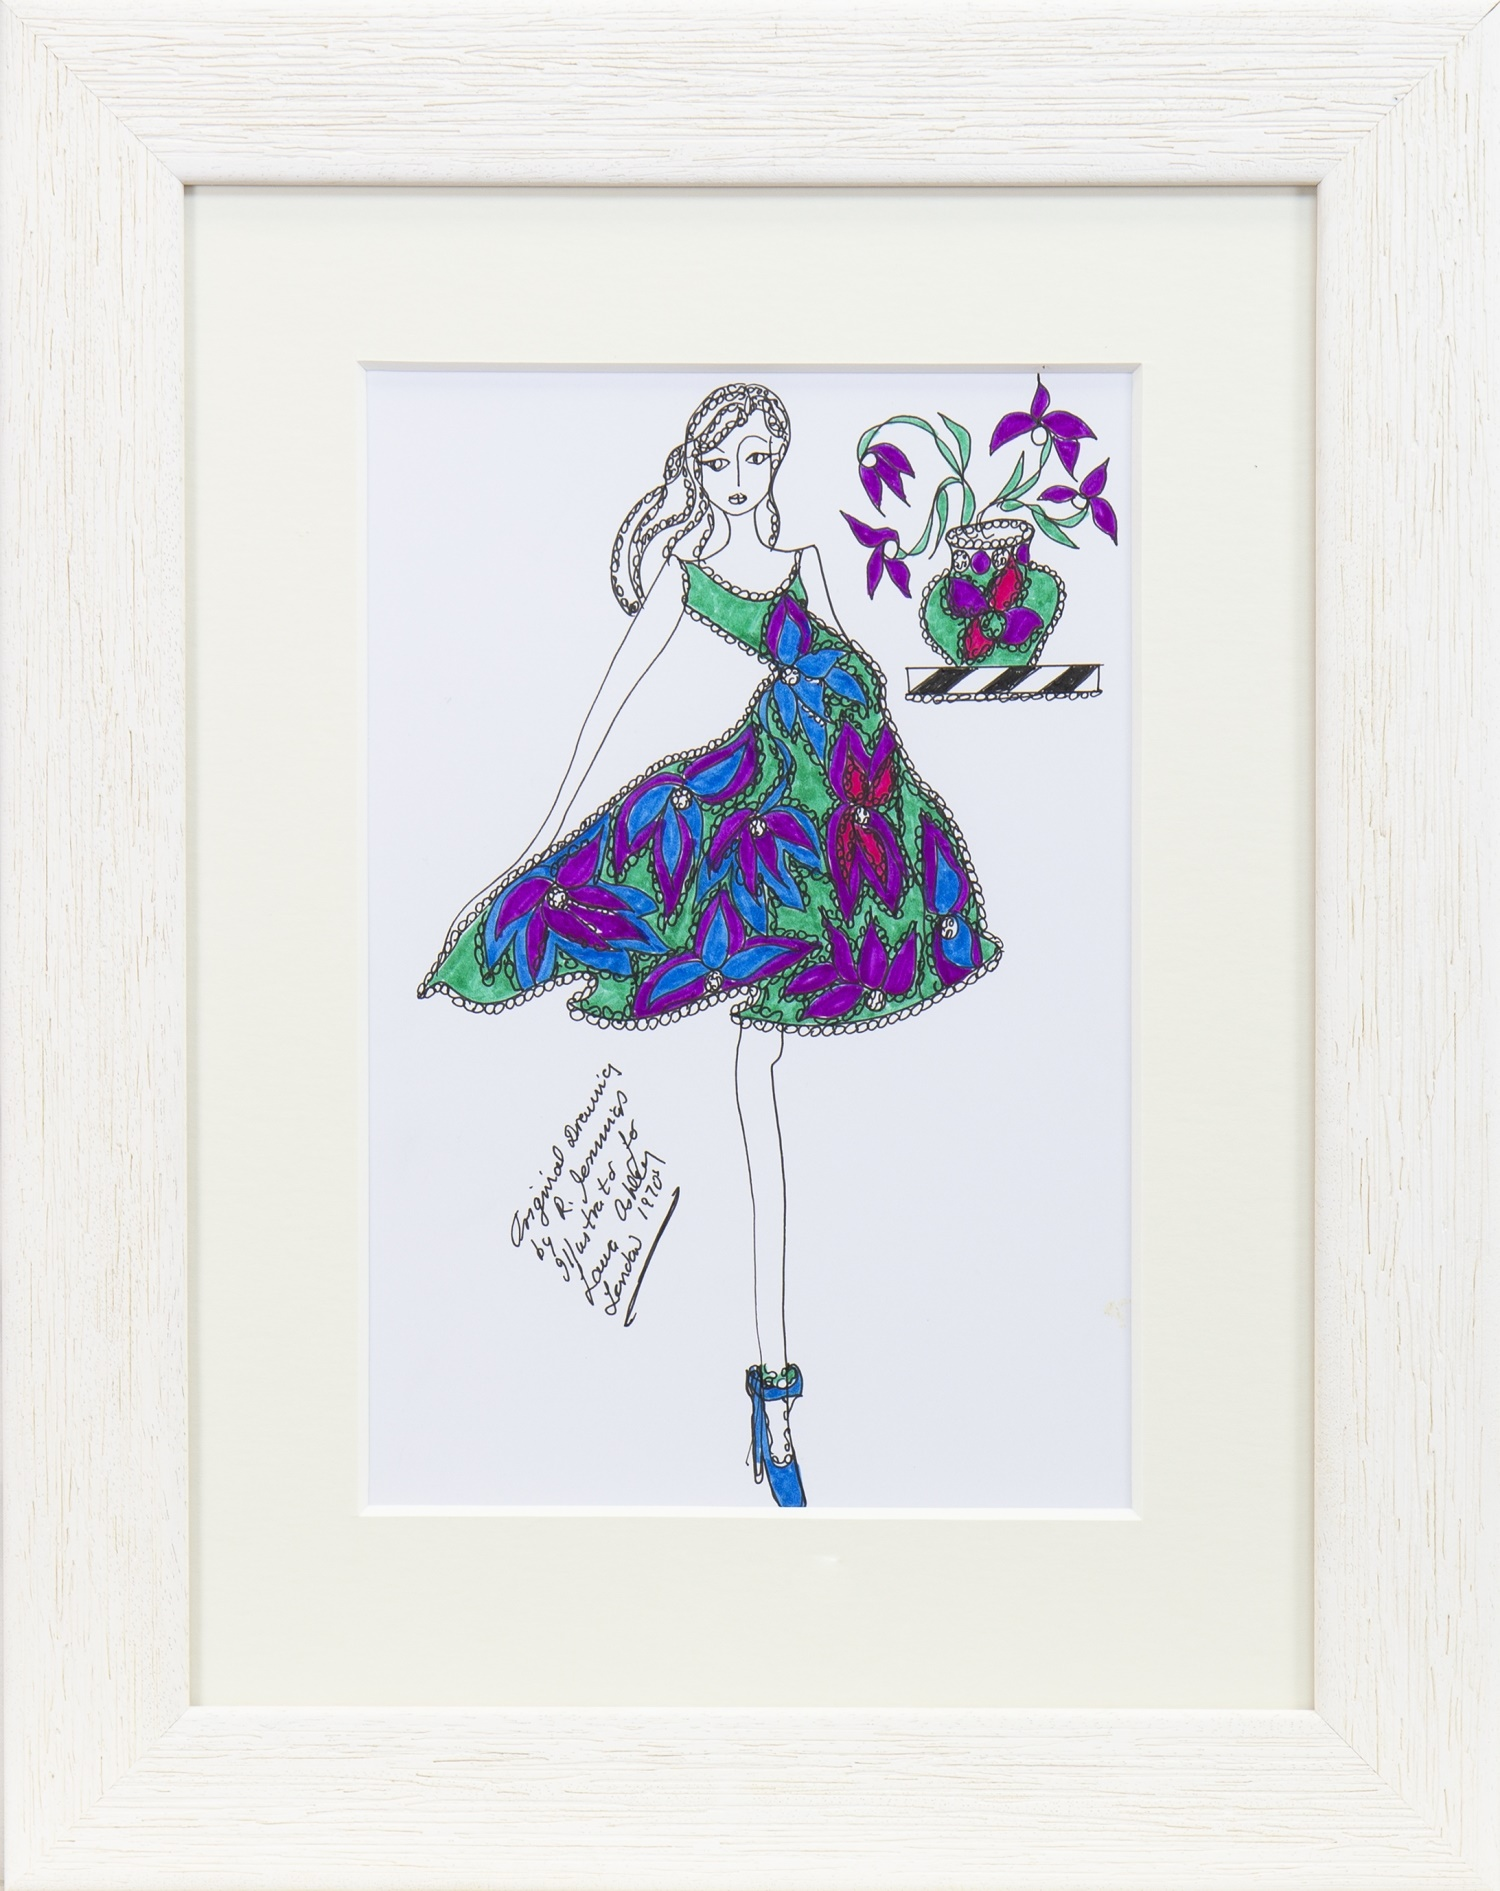 Lot 36 - ORIGINAL ILLUSTRATION OF DESIGNS FOR LAURA ASHLEY, BY ROZ JENNINGS